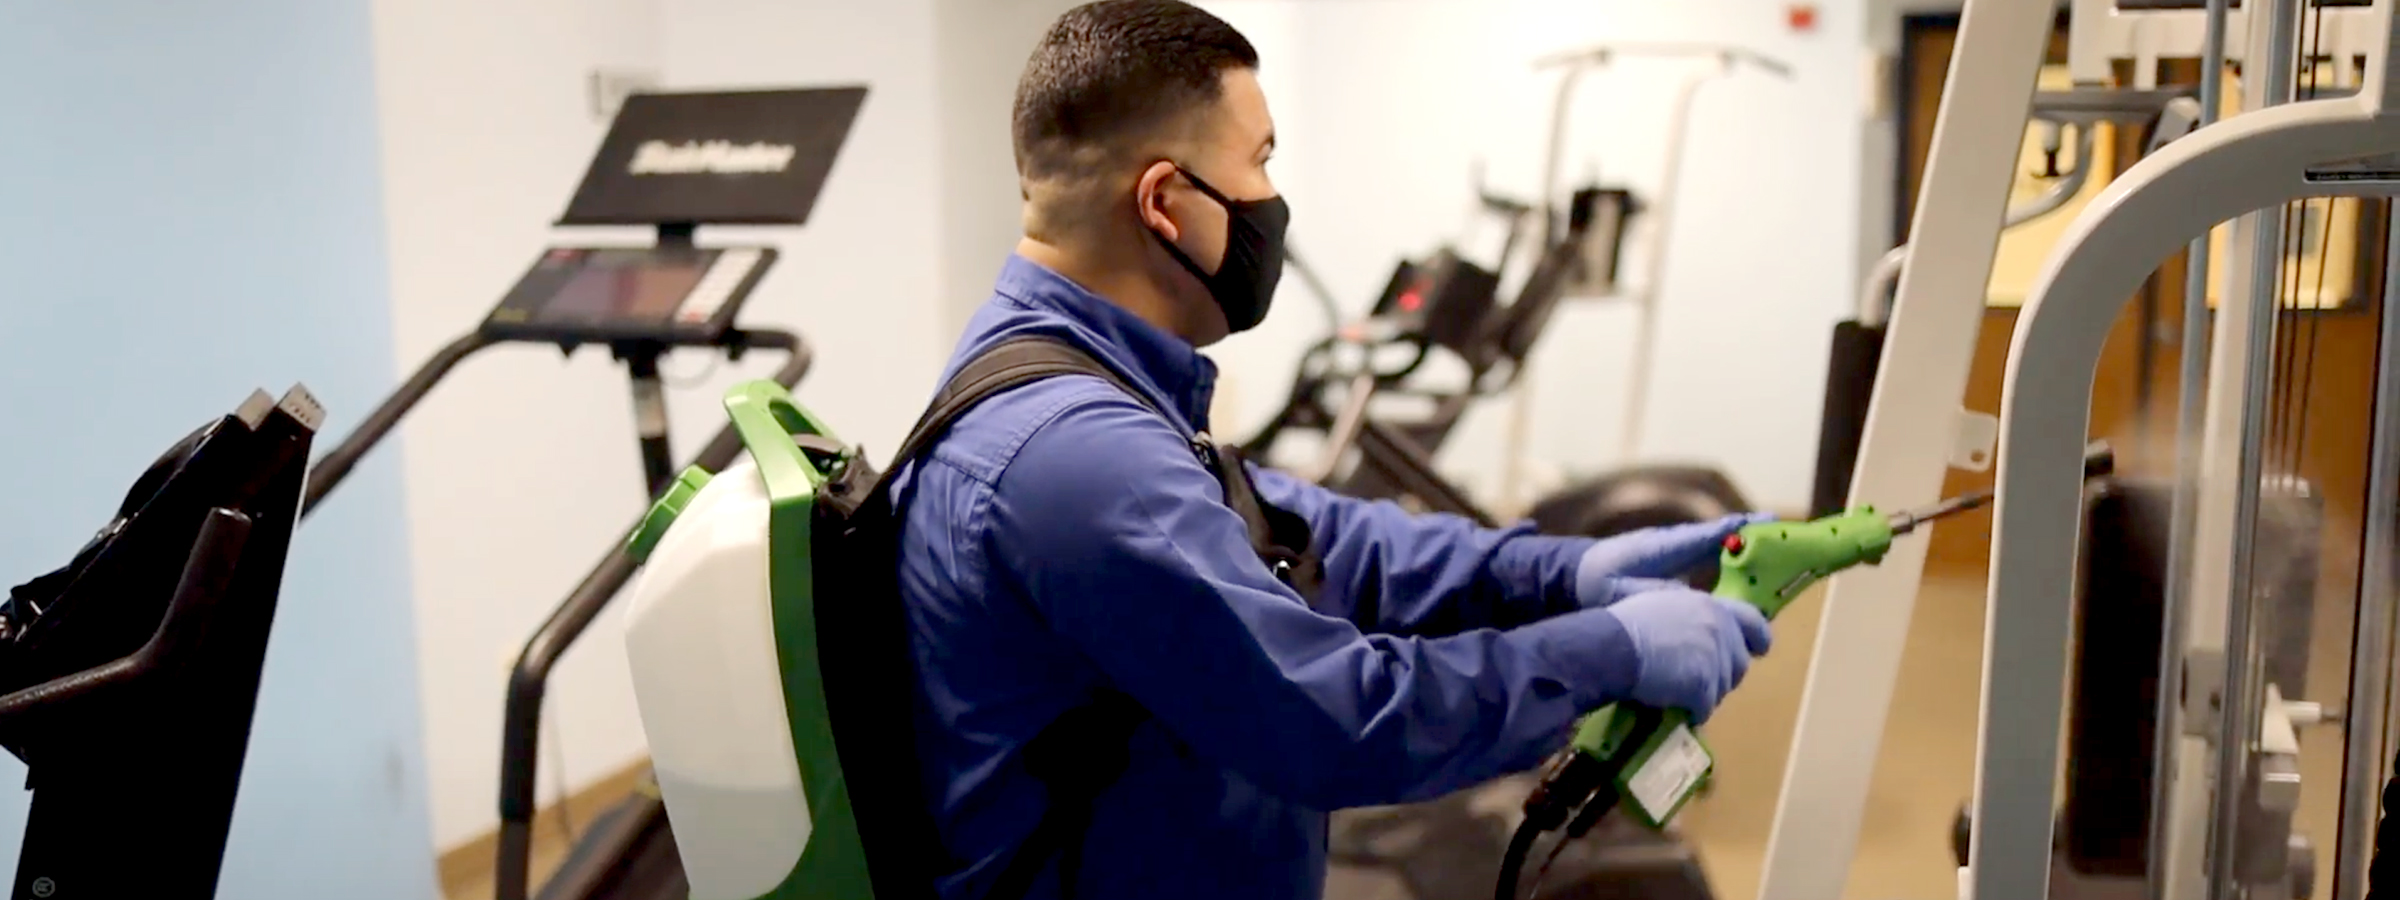 Gym Disinfection Services